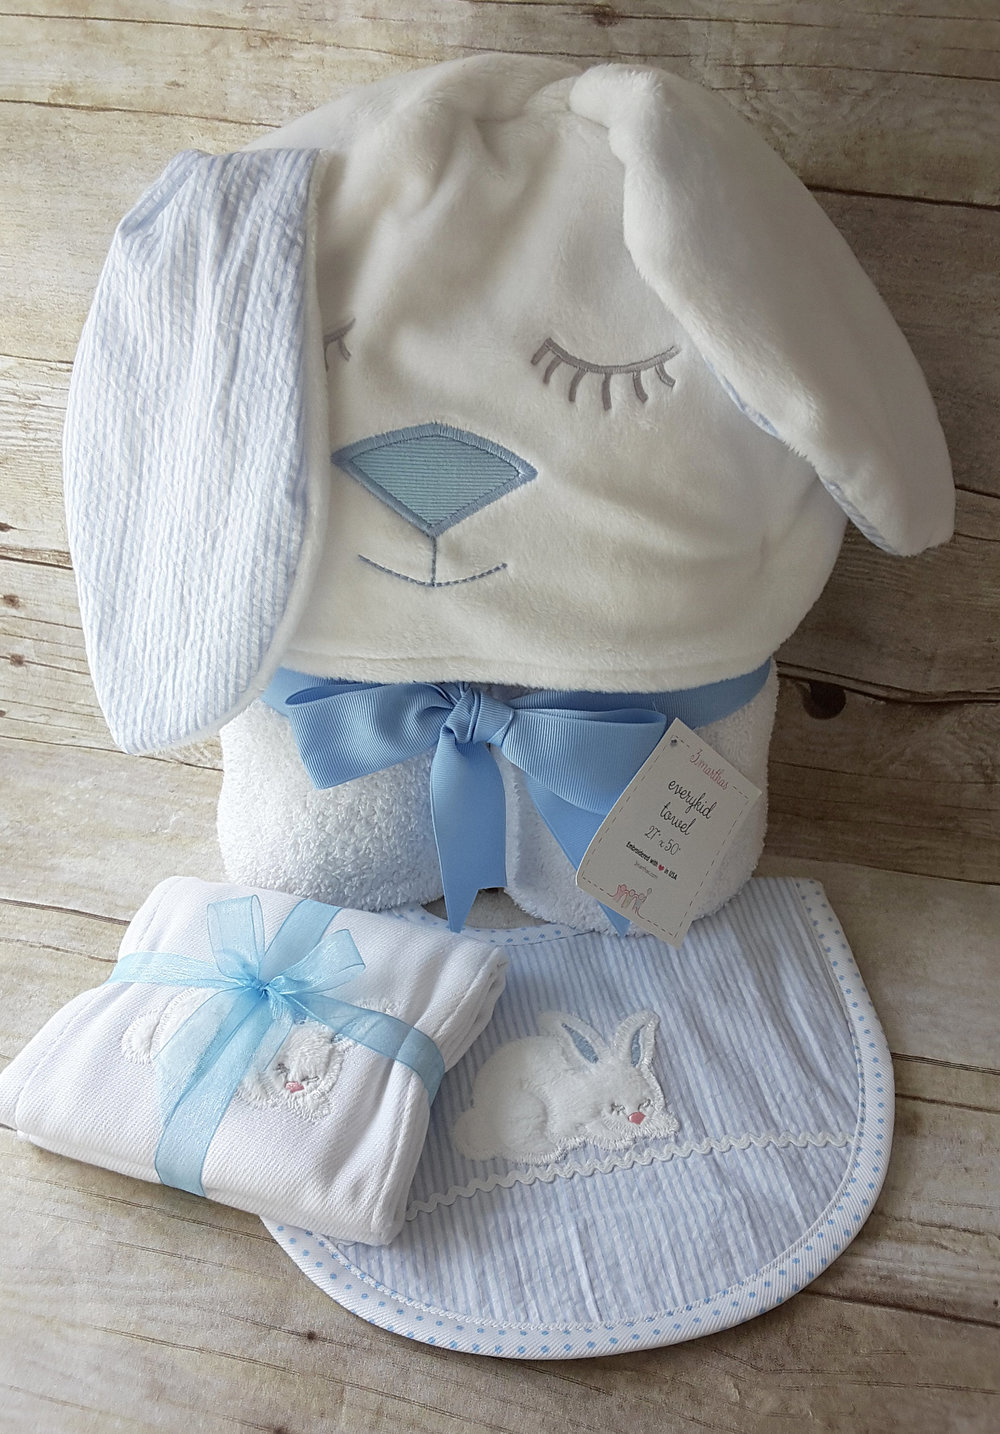 Blue Bunny Character Towel, Blue Bunny Burp Cloth, and Blue Bunny Medium Bib